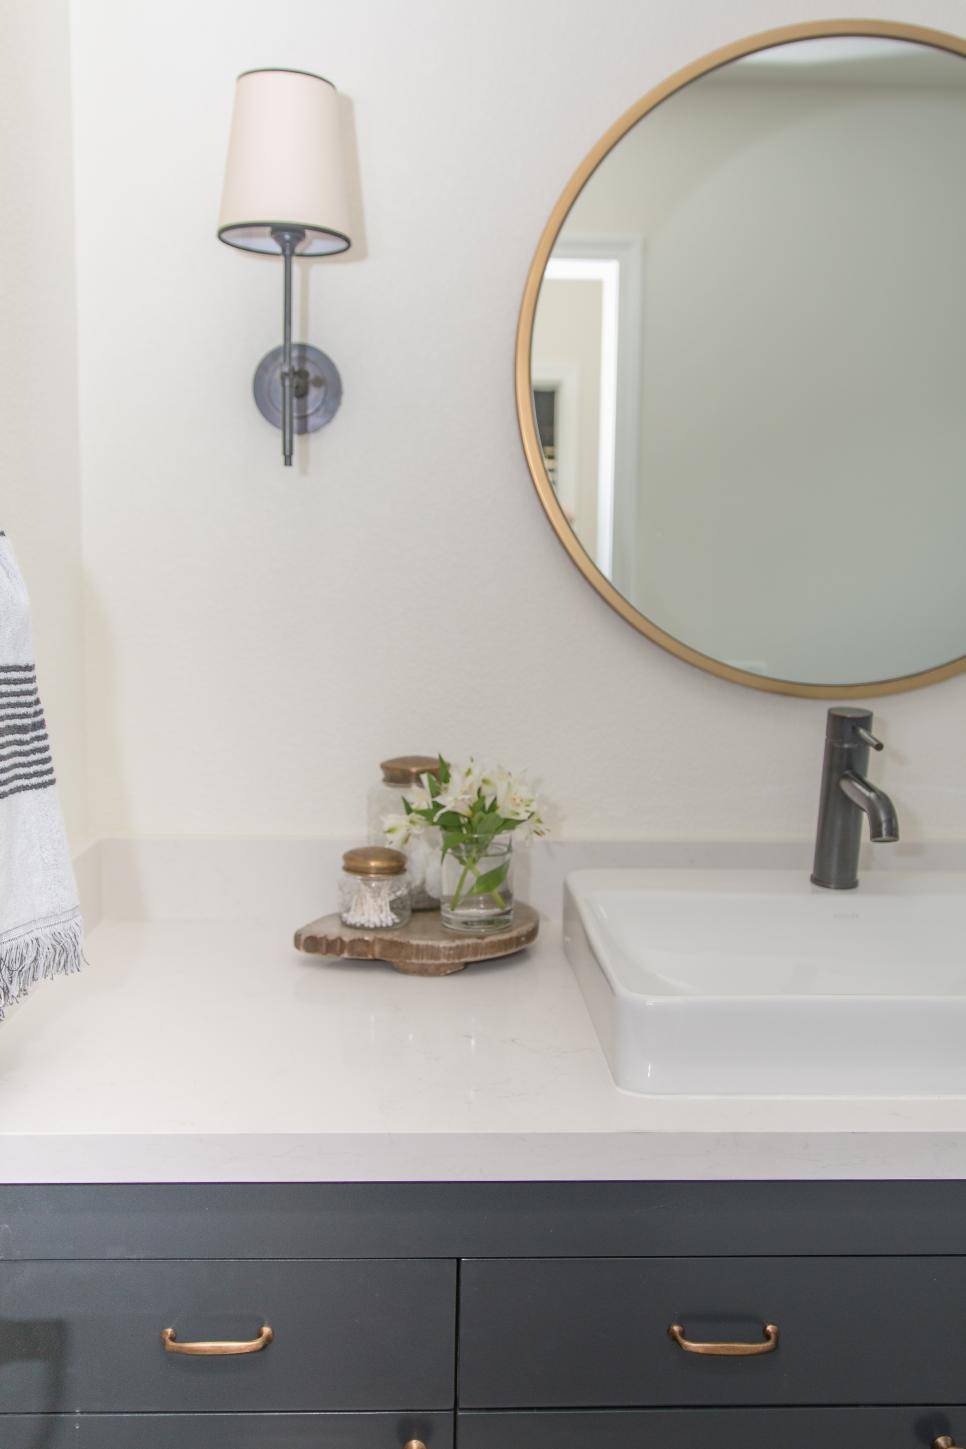 Bathroom Remodel Outer Banks: Before-and-After Bathroom Remodels On A Budget